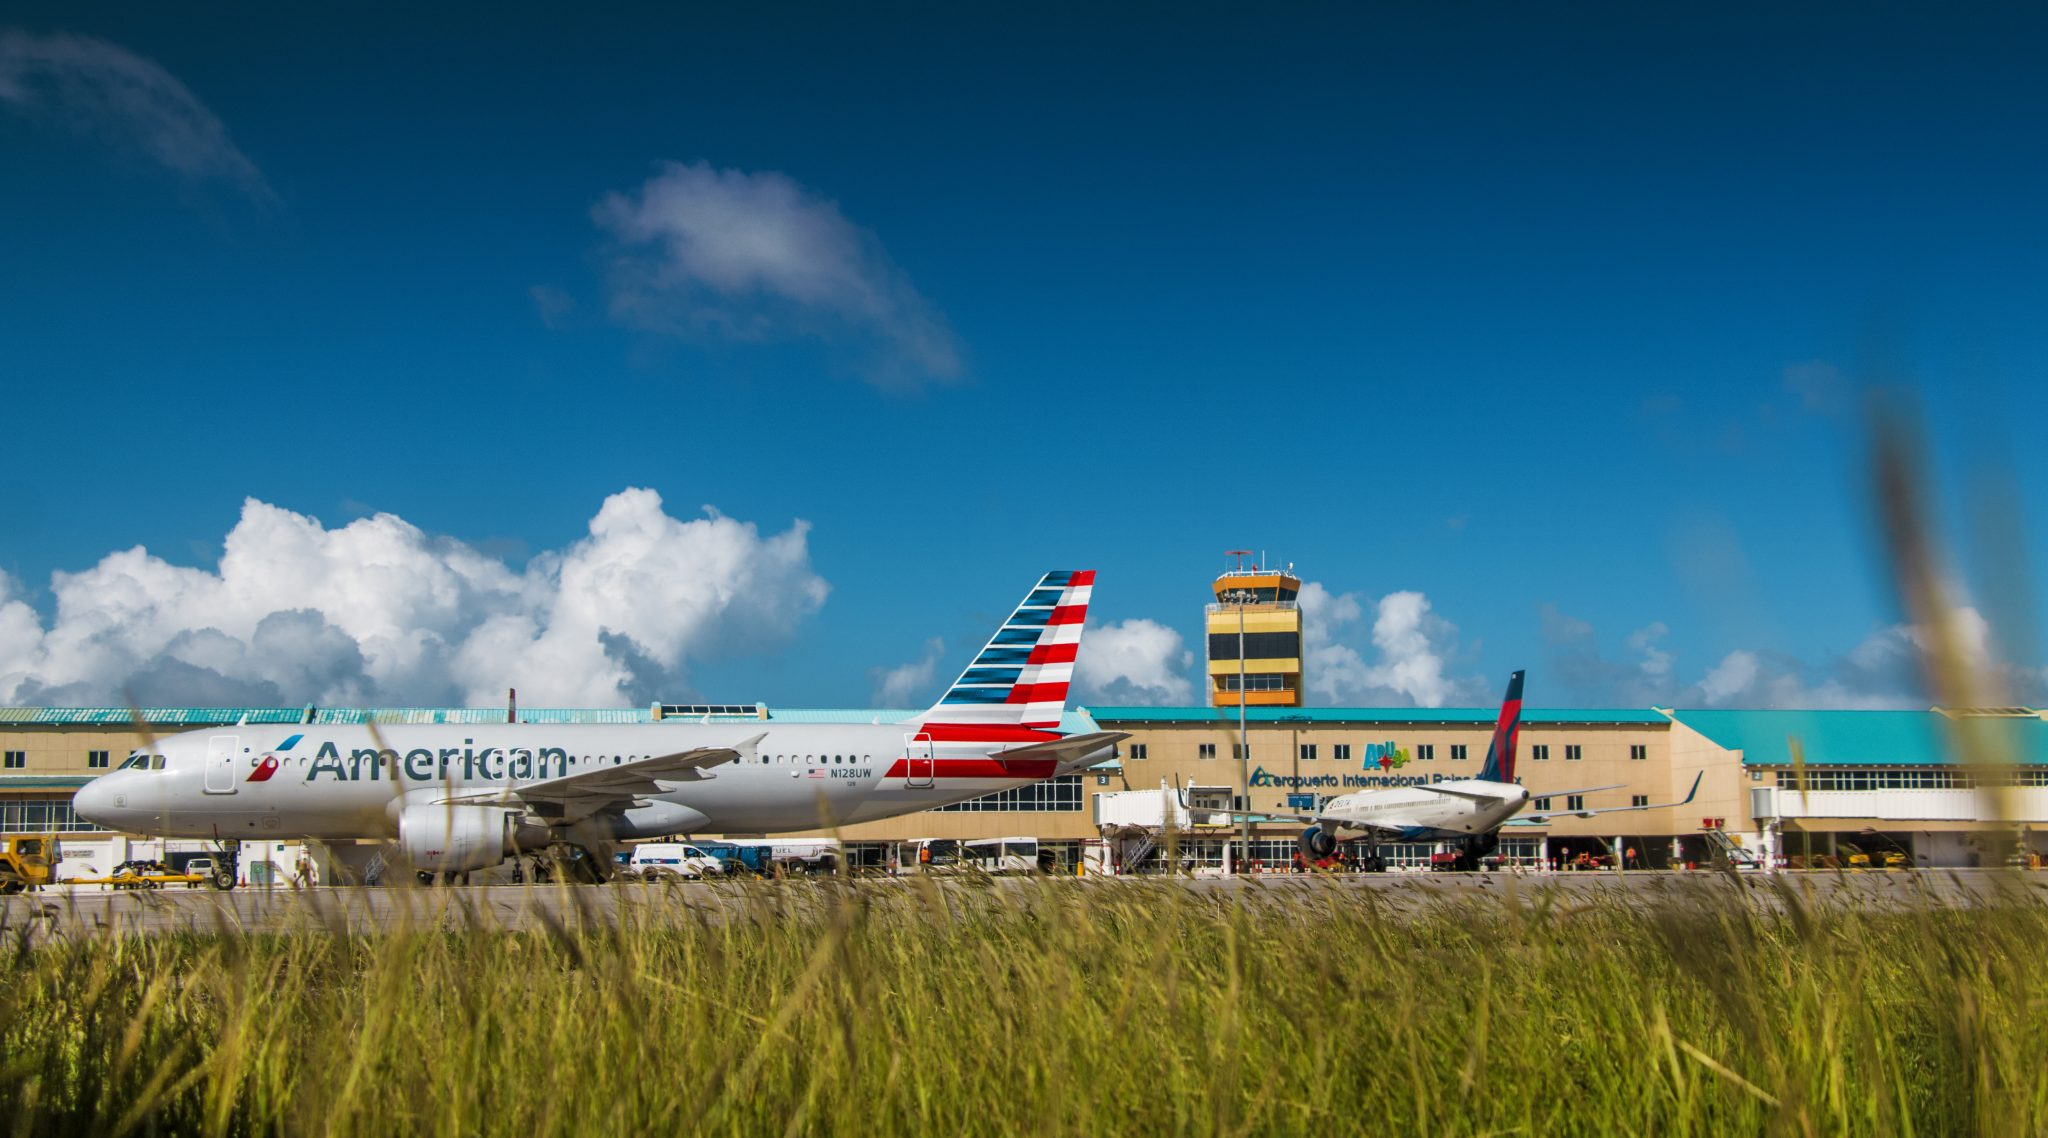 American Airlines at Aruba Airport